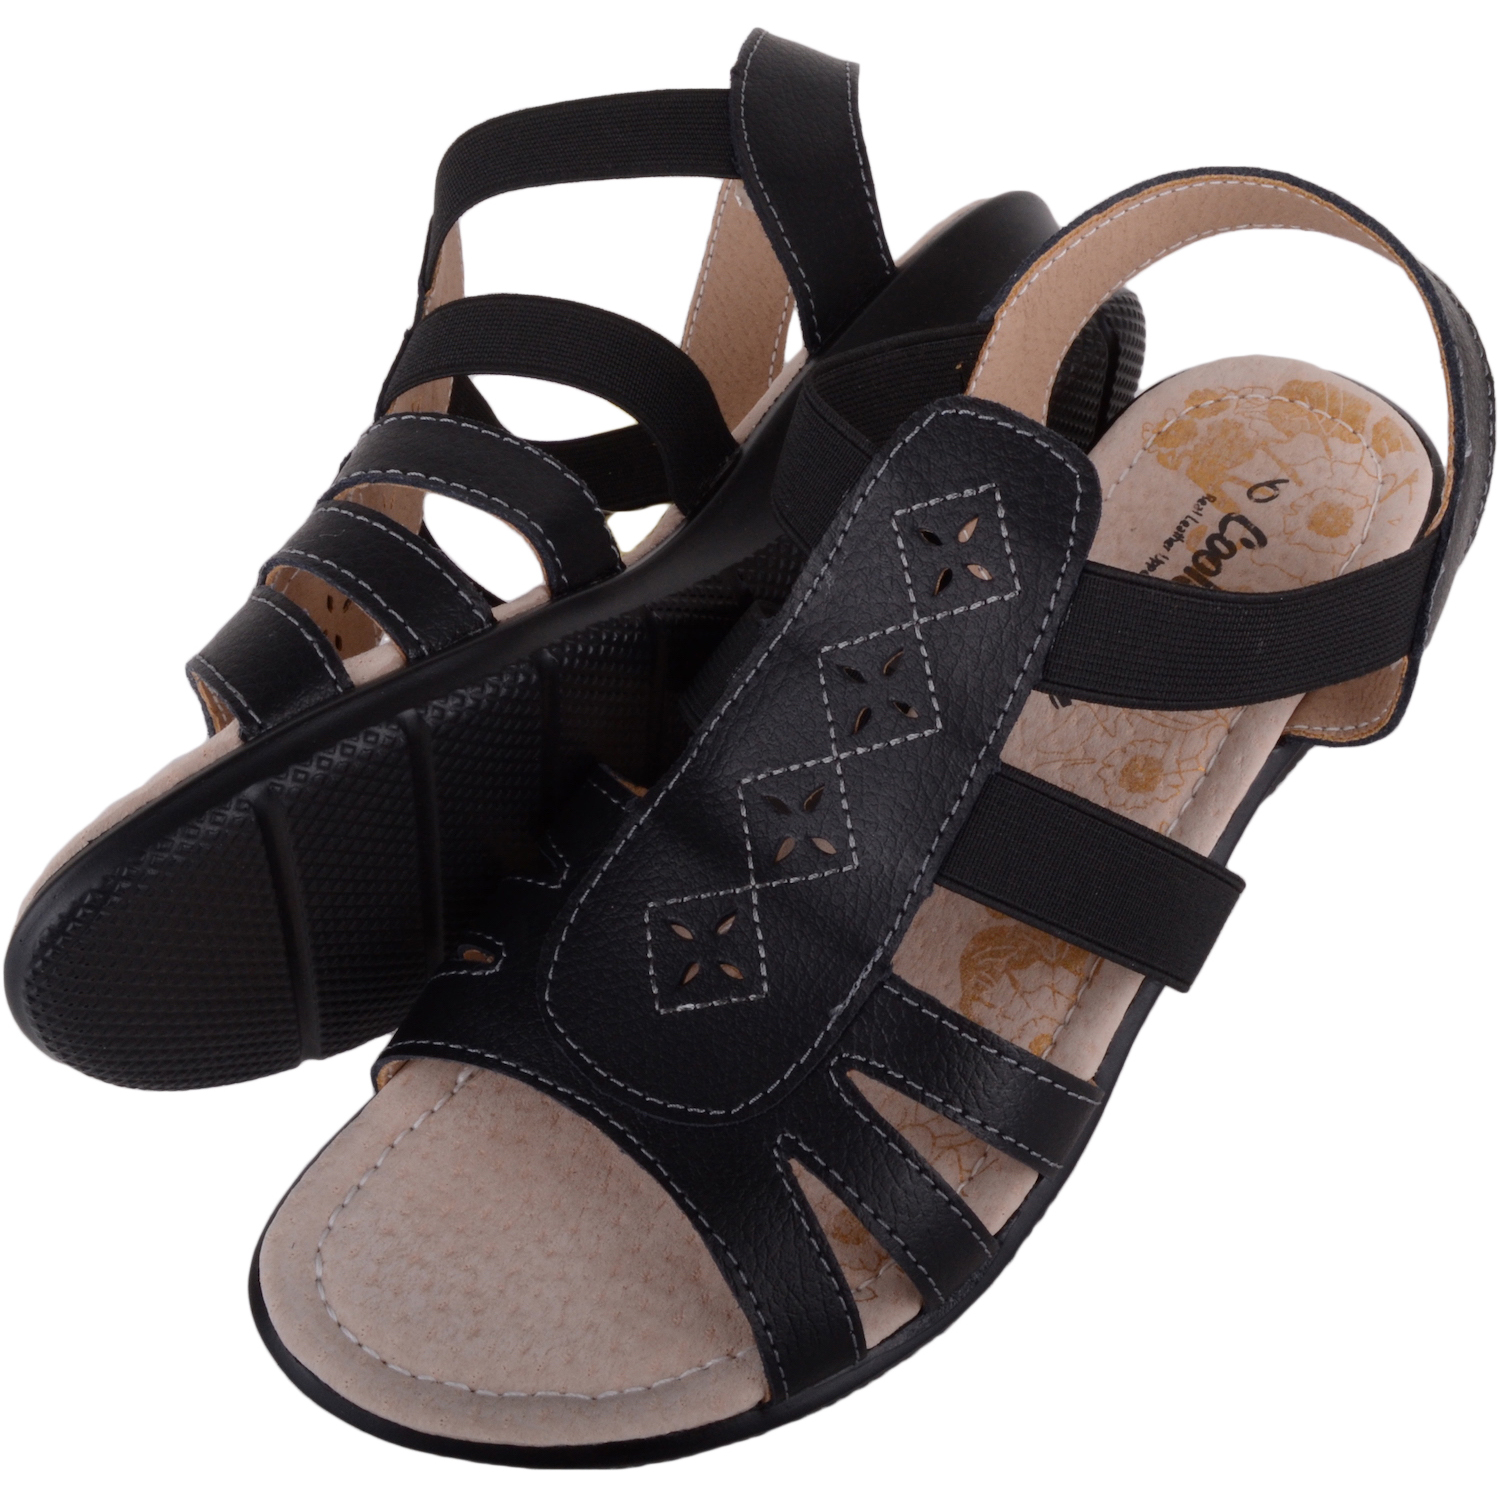 Leather Summer Sandals - Black